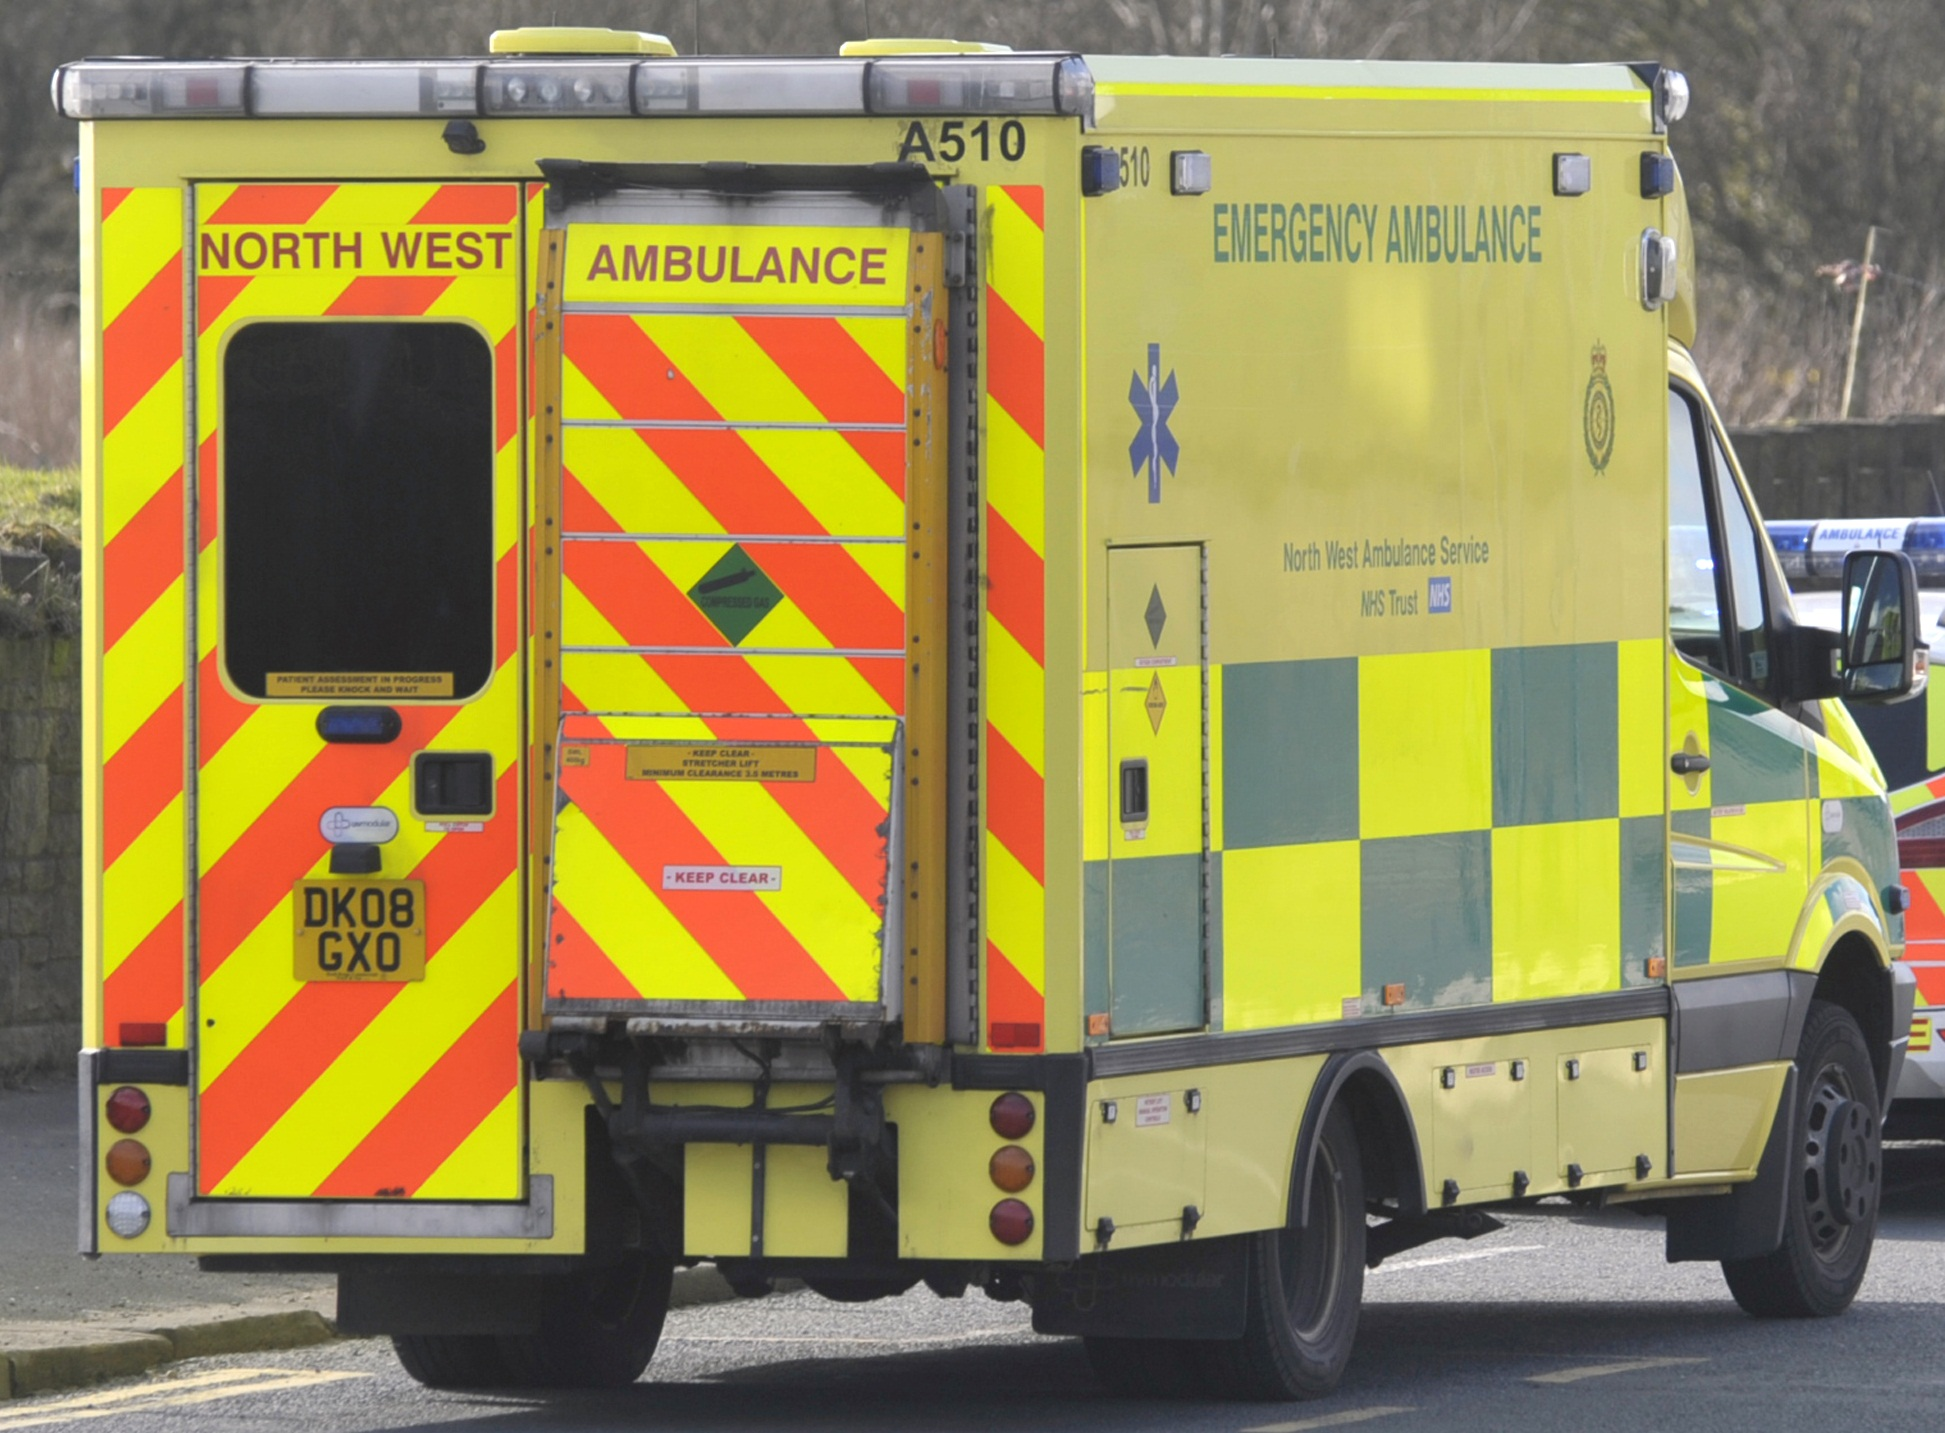 Air ambulance called for man mangled in machine